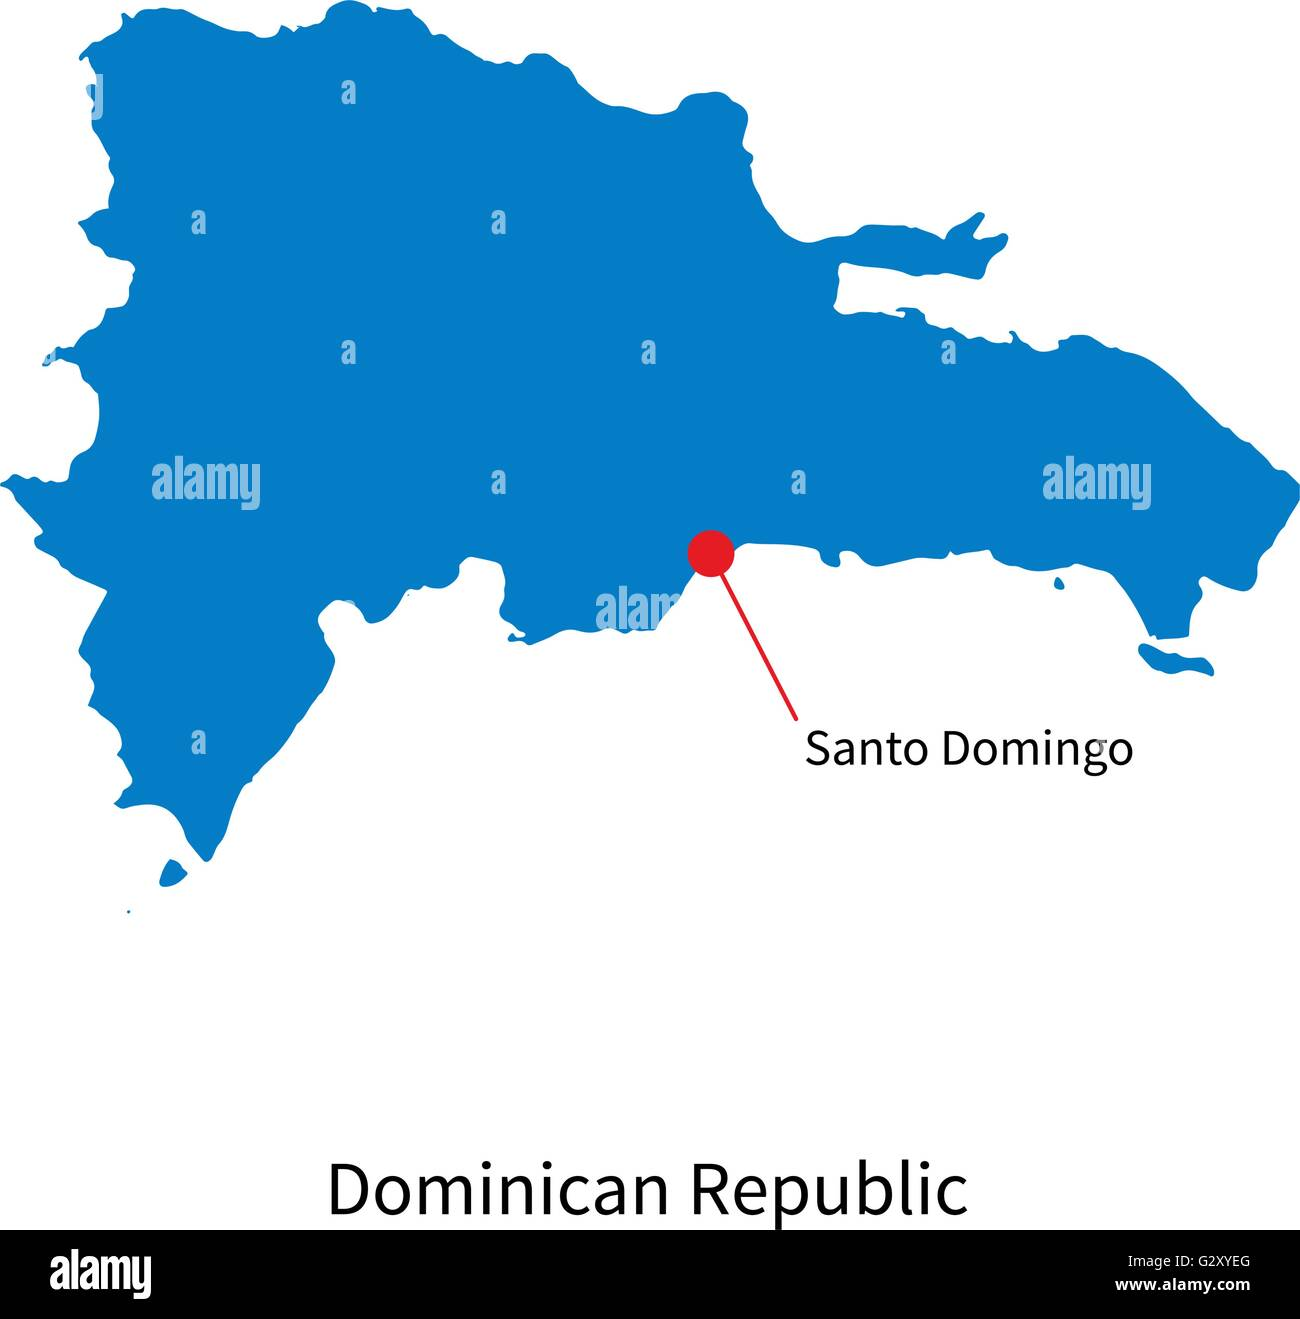 Vector map of Dominican Republic and capital city Santo ... on madrid spain map, hispaniola dominican republic map, havana cuba map, el salvador map, bavaro dominican republic map, la romana dominican republic map, dominican republic road map, world map, puerto plata dominican republic map, barahona dominican republic map, san juan map, bahoruco dominican republic map, panama city panama map, cap cana dominican republic map, santiago dominican republic map, tegucigalpa honduras map, bahamas map, punta cana dominican republic map, monte cristi dominican republic map, playa bonita dominican republic map,